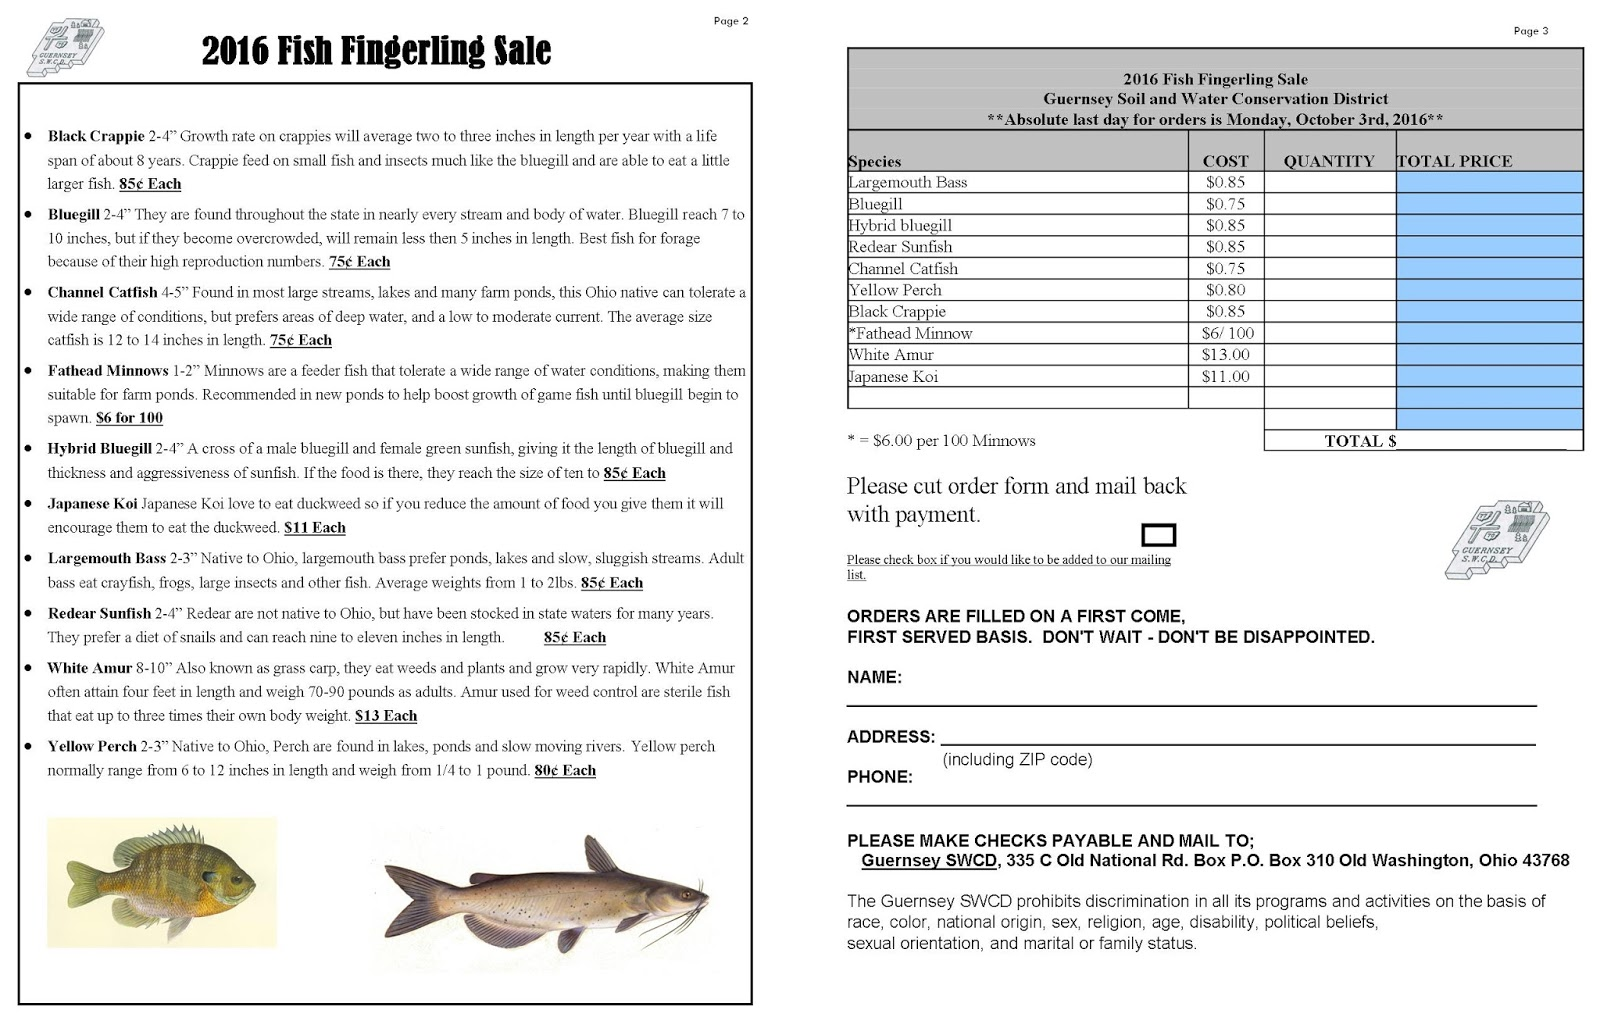 Guernsey Soil & Water Conservation District: 2016 Fish